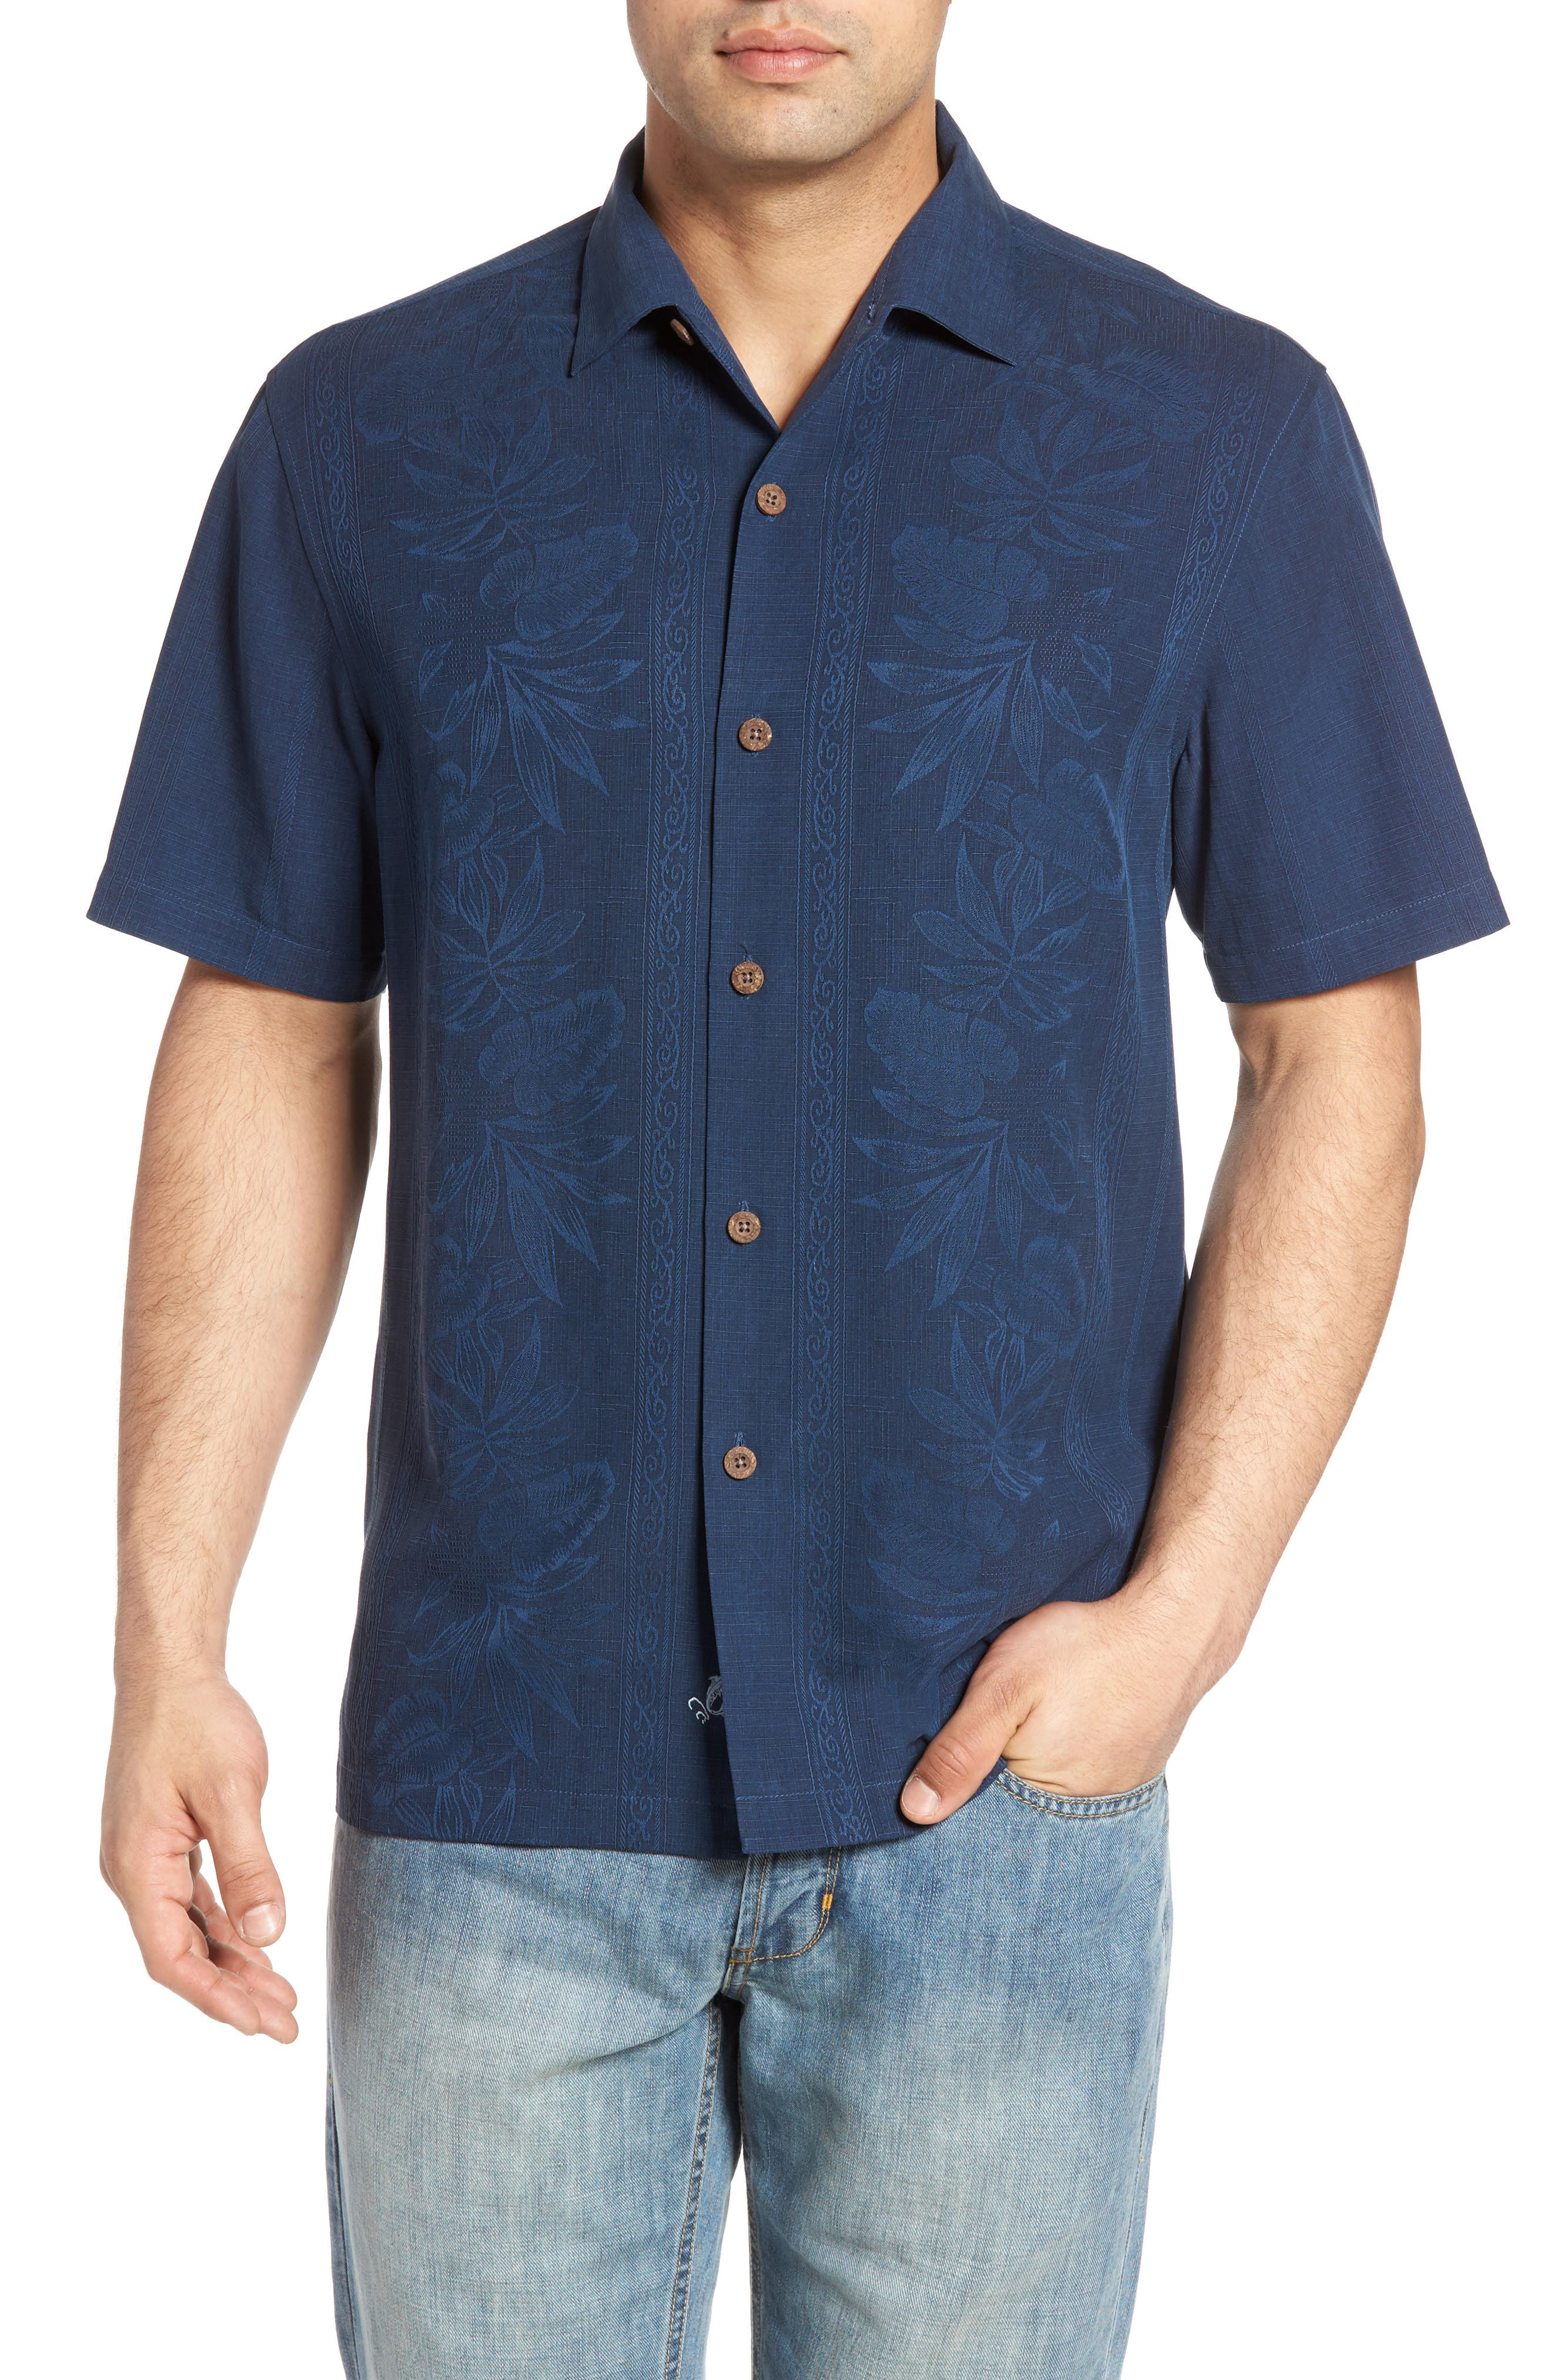 Alternate Image 1 Selected - Tommy Bahama Pacific Standard Fit Floral Silk Camp Shirt